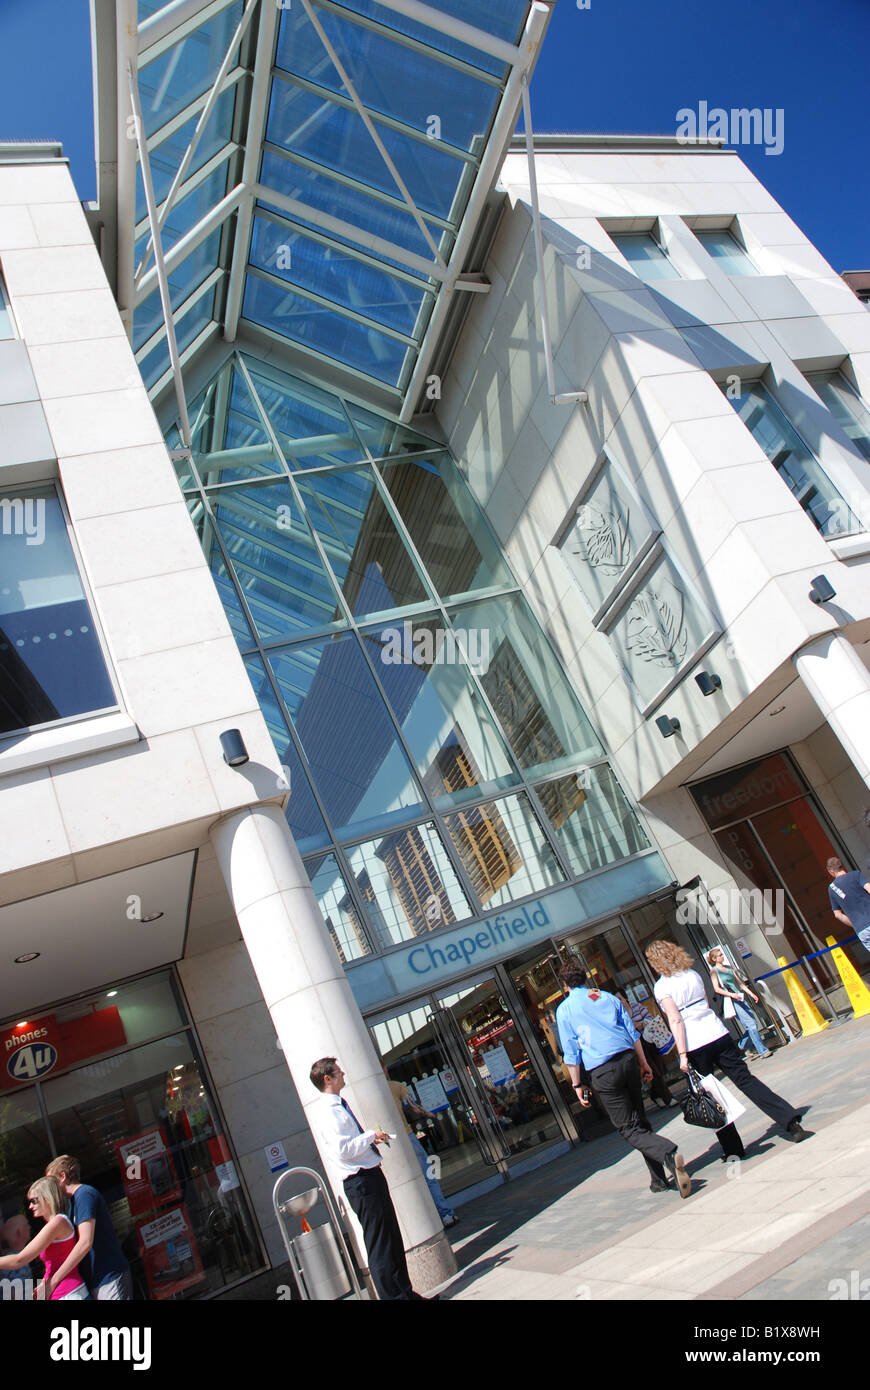 Entrance to Chapelfield Shopping Mall, Norwich - Stock Image